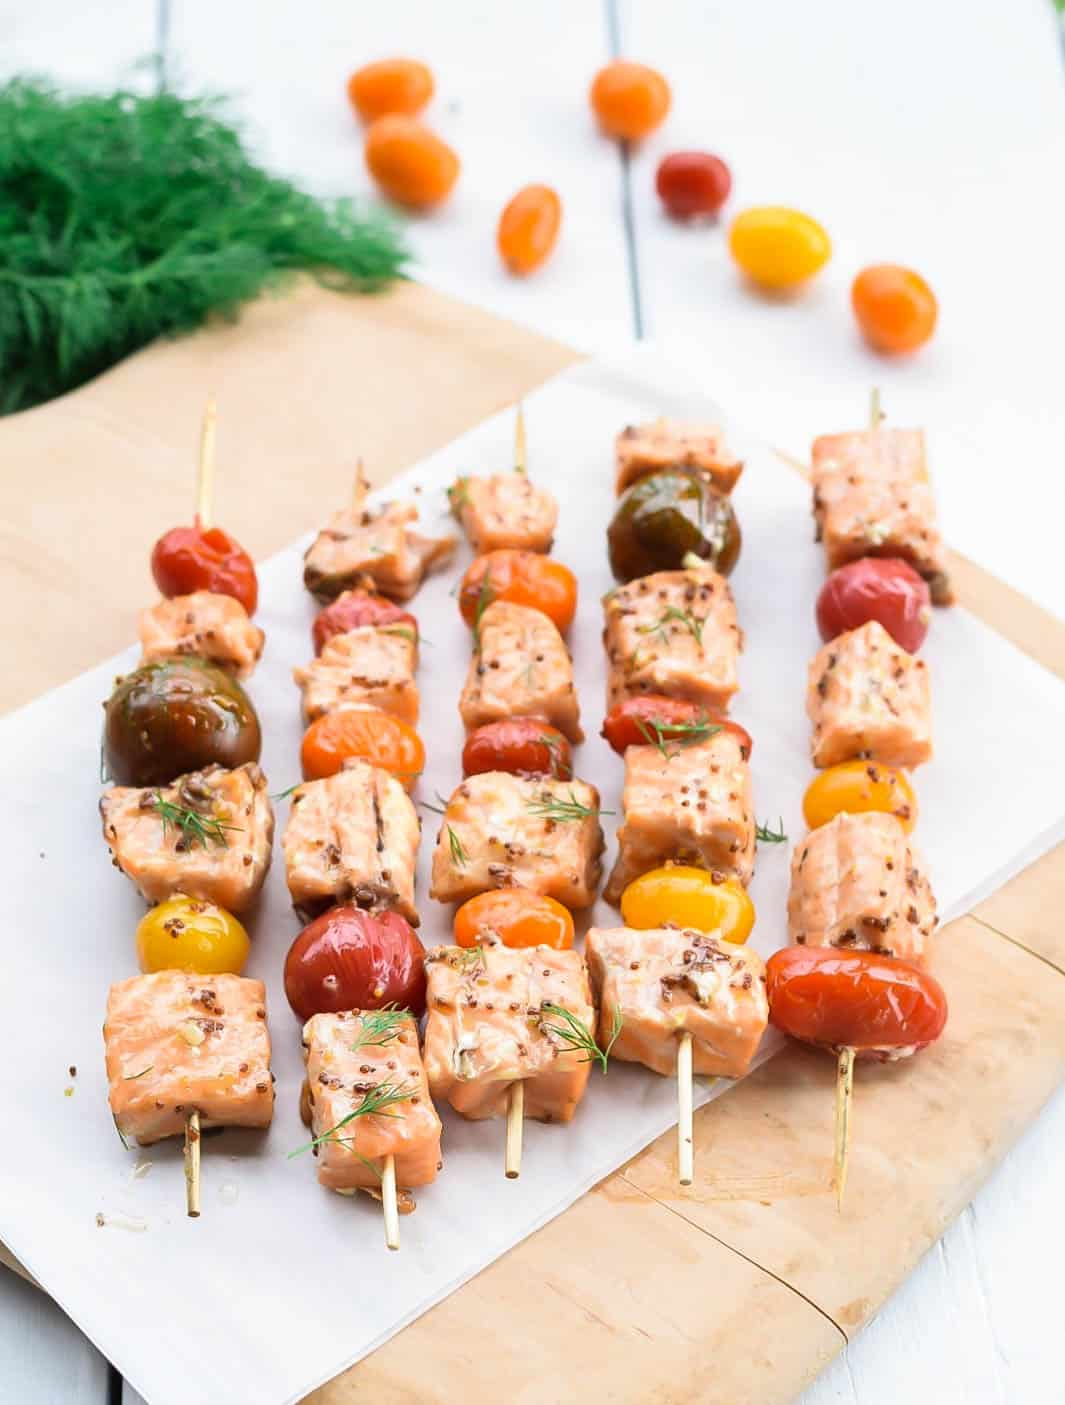 Grilled salmon skewers with honey mustard